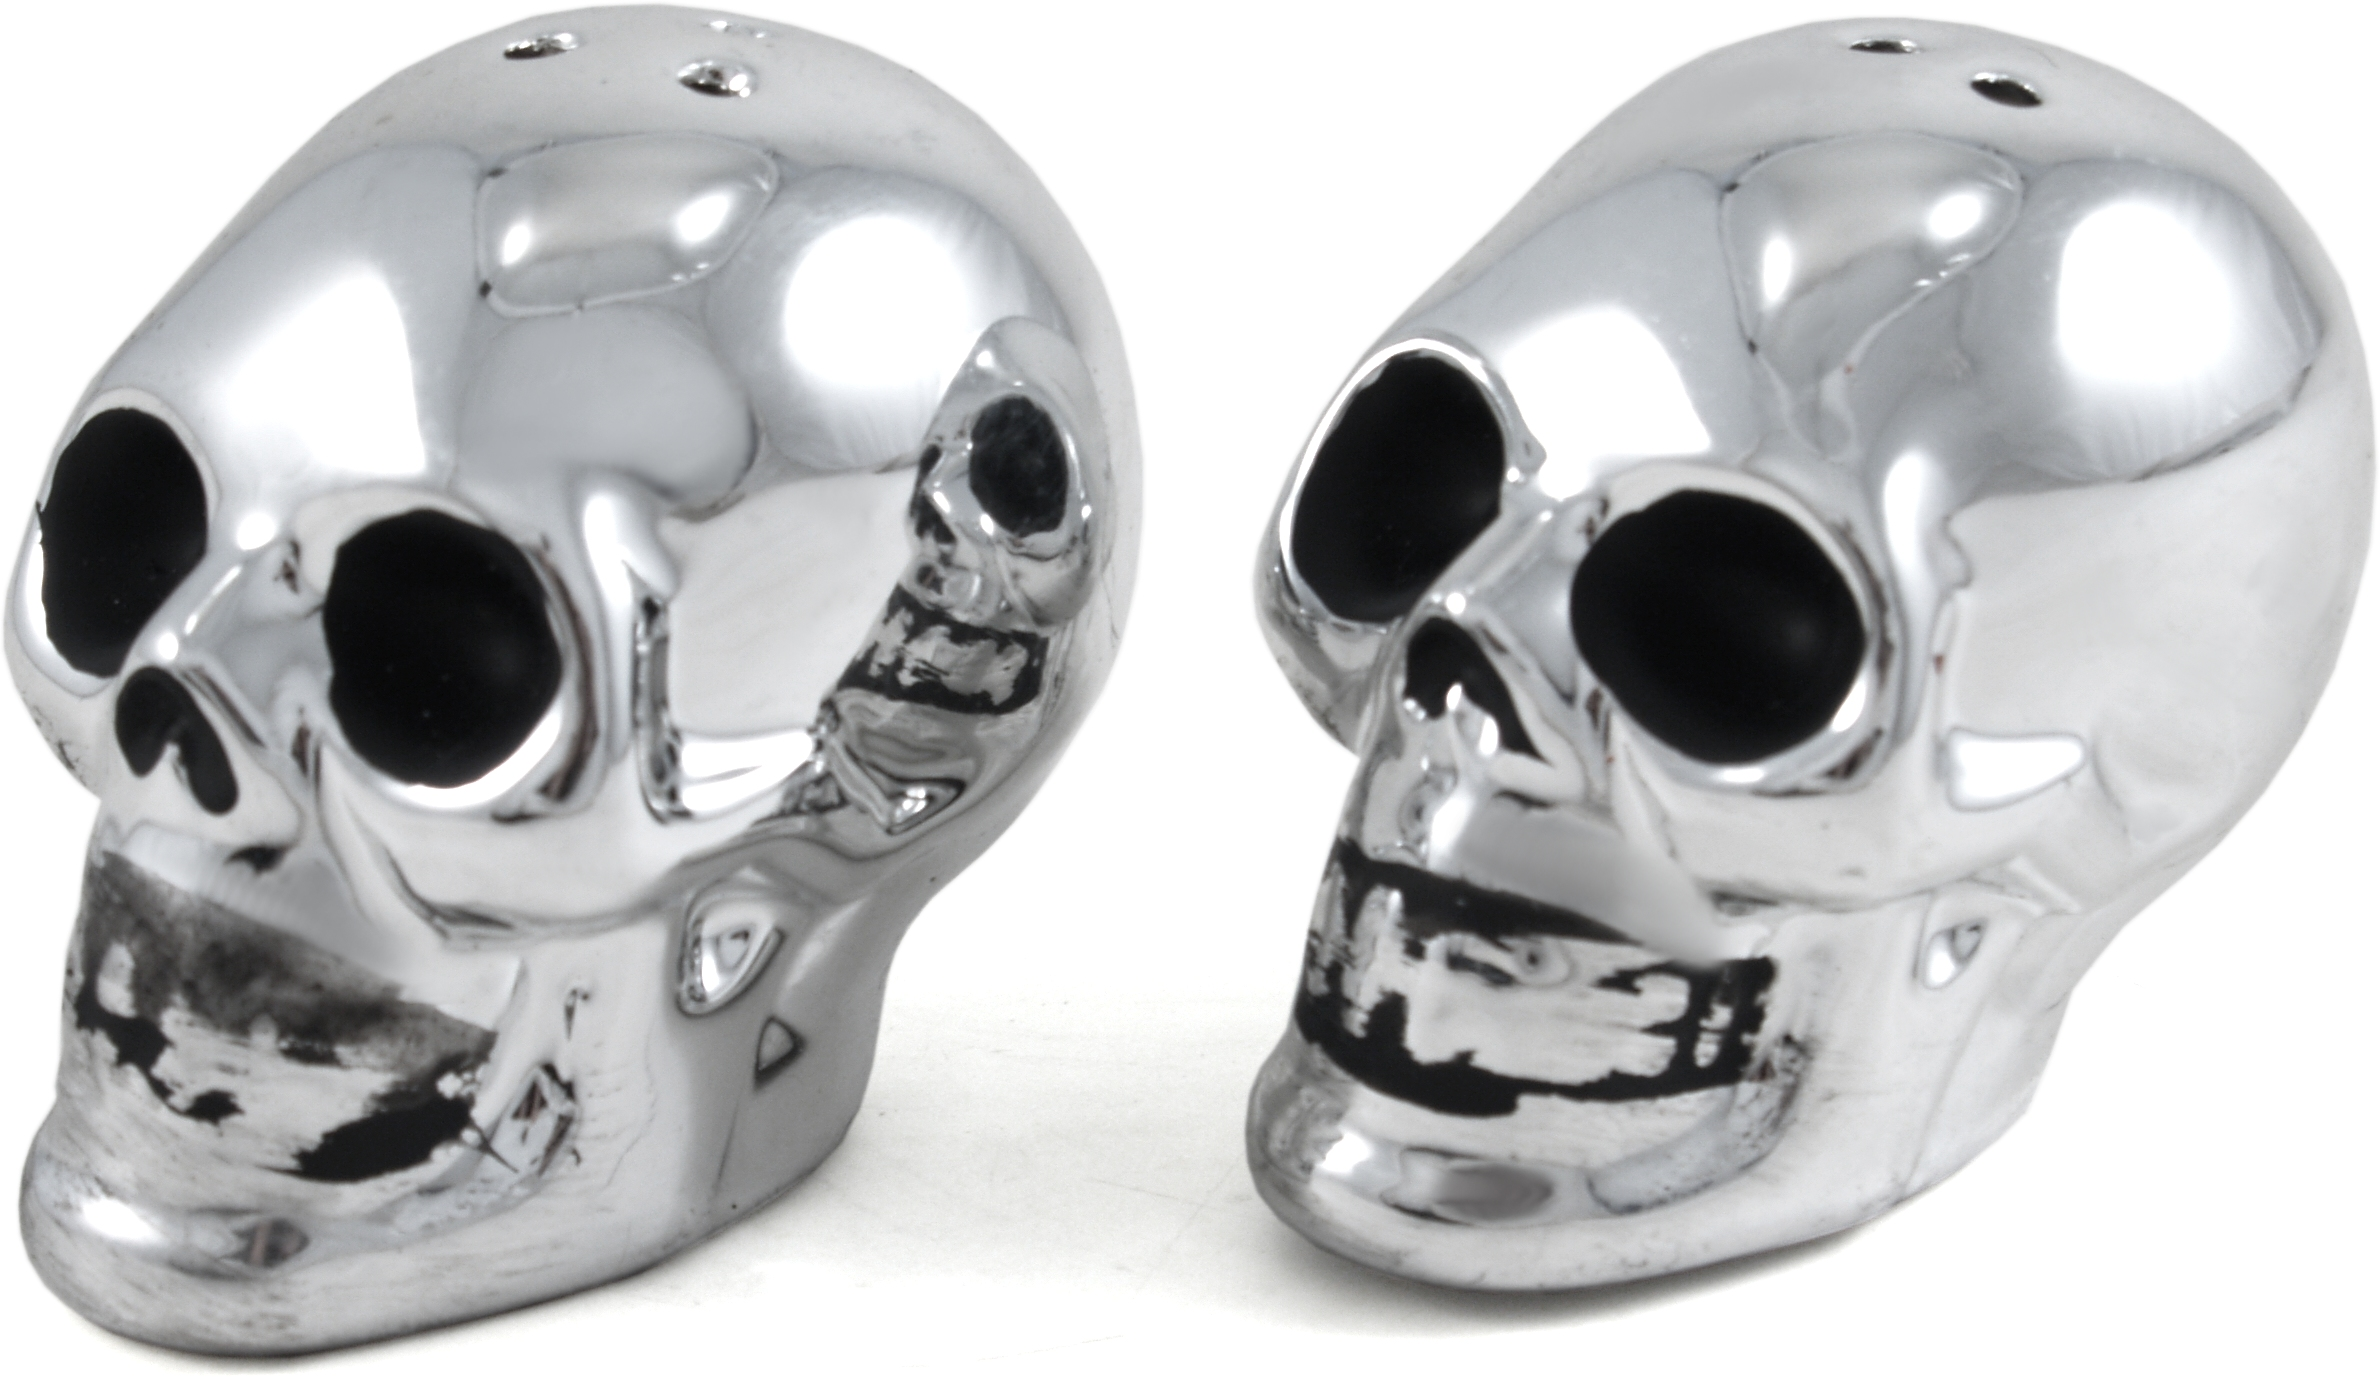 Boston Warehouse The Bone Collector Salt and Pepper Shaker Set